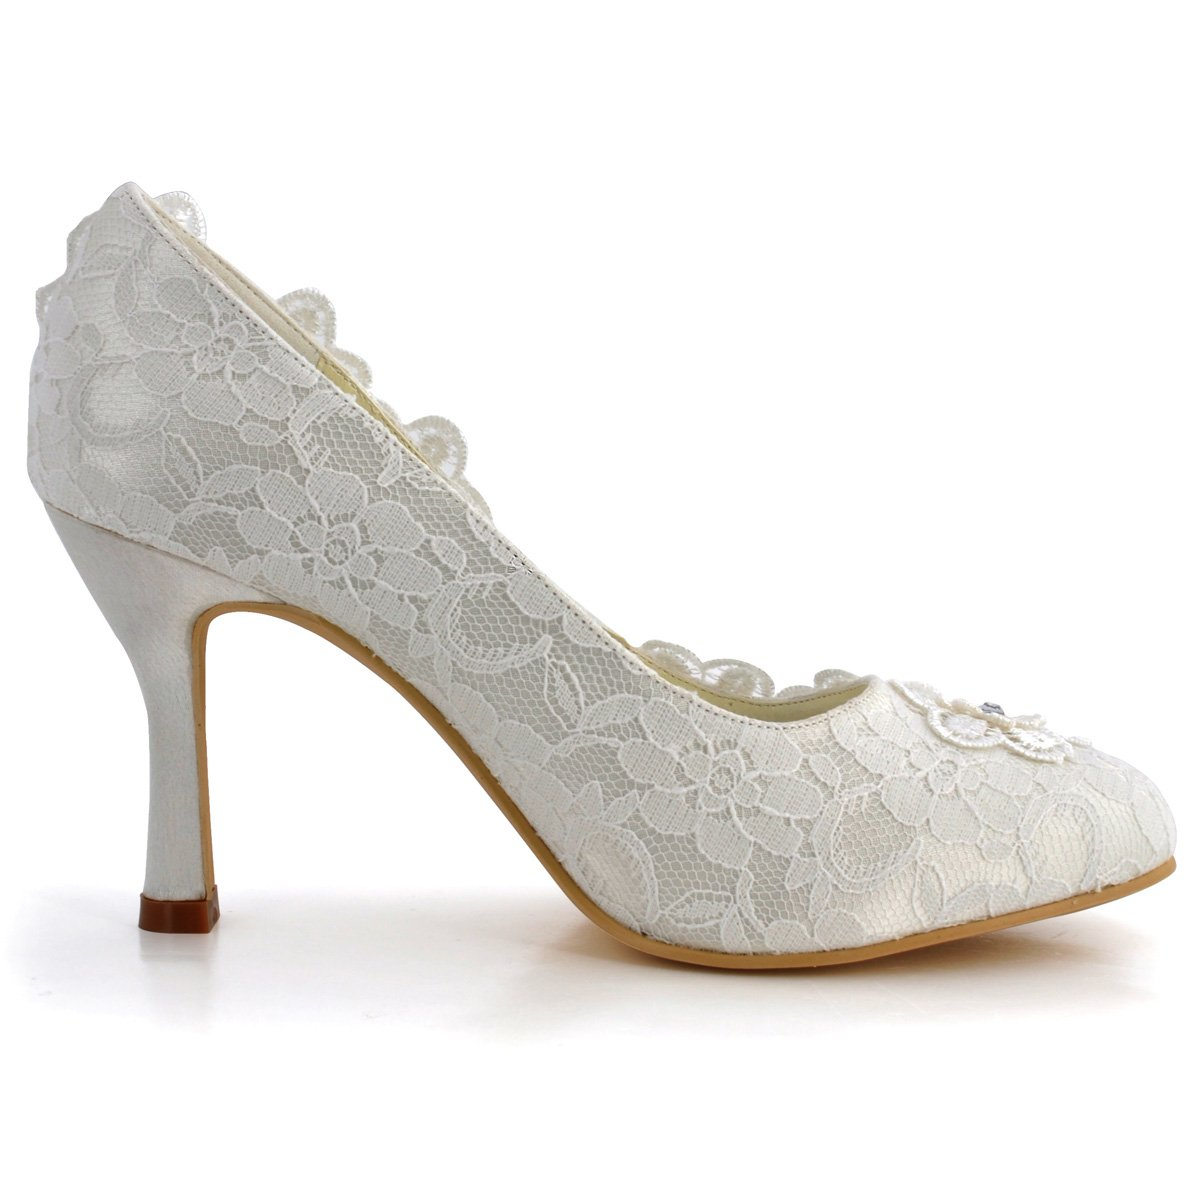 ElegantPark Women Vintage Closed Toe Pumps High Heel Flowers Lace Wedding Bridal Dress Shoes 3